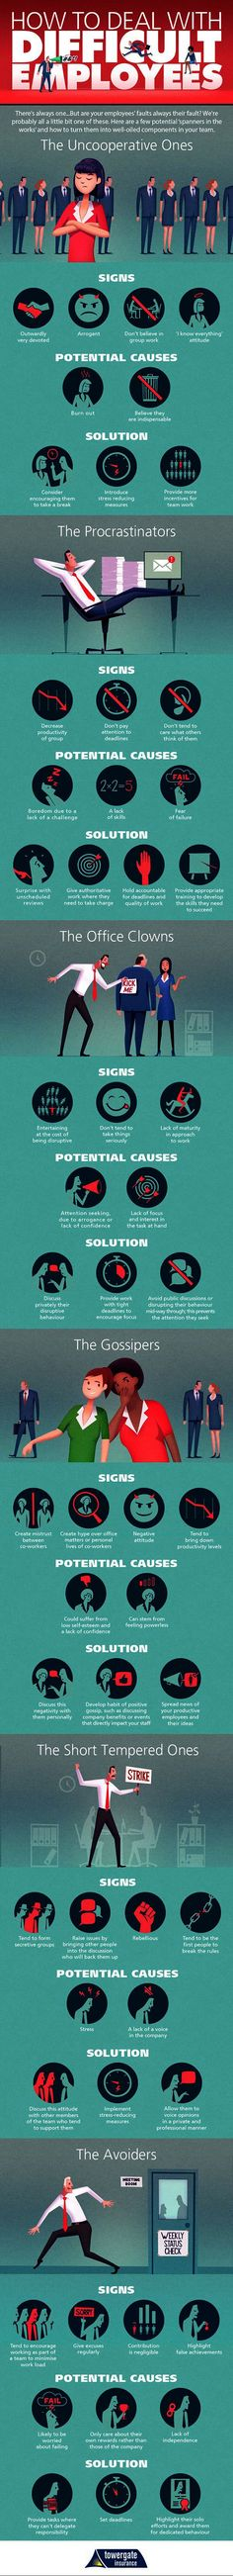 Business and management infographic & data visualisation How To Deal With Difficult Employees - Infographic Description How To Deal With Leadership Development, Personal Development, Leadership Strategies, Amélioration Continue, Coaching, Info Board, Employee Engagement, Career Advice, Interview Advice